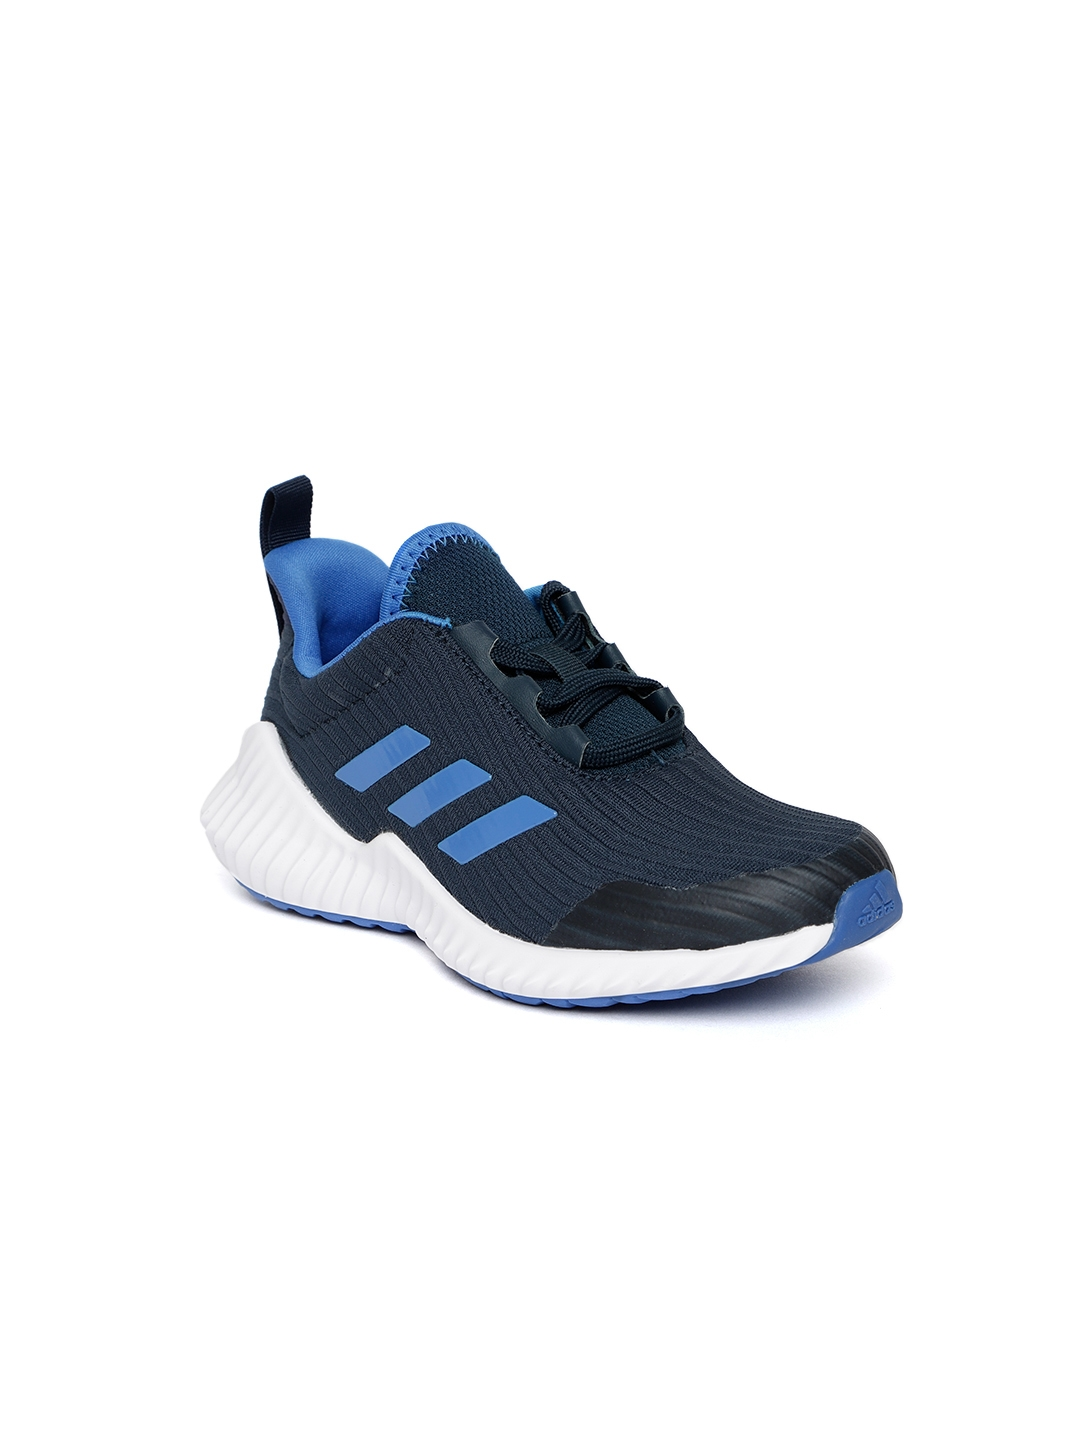 Buy ADIDAS Kids Navy FORTARUN Self Striped Running Shoes - Sports ... 45164789e91